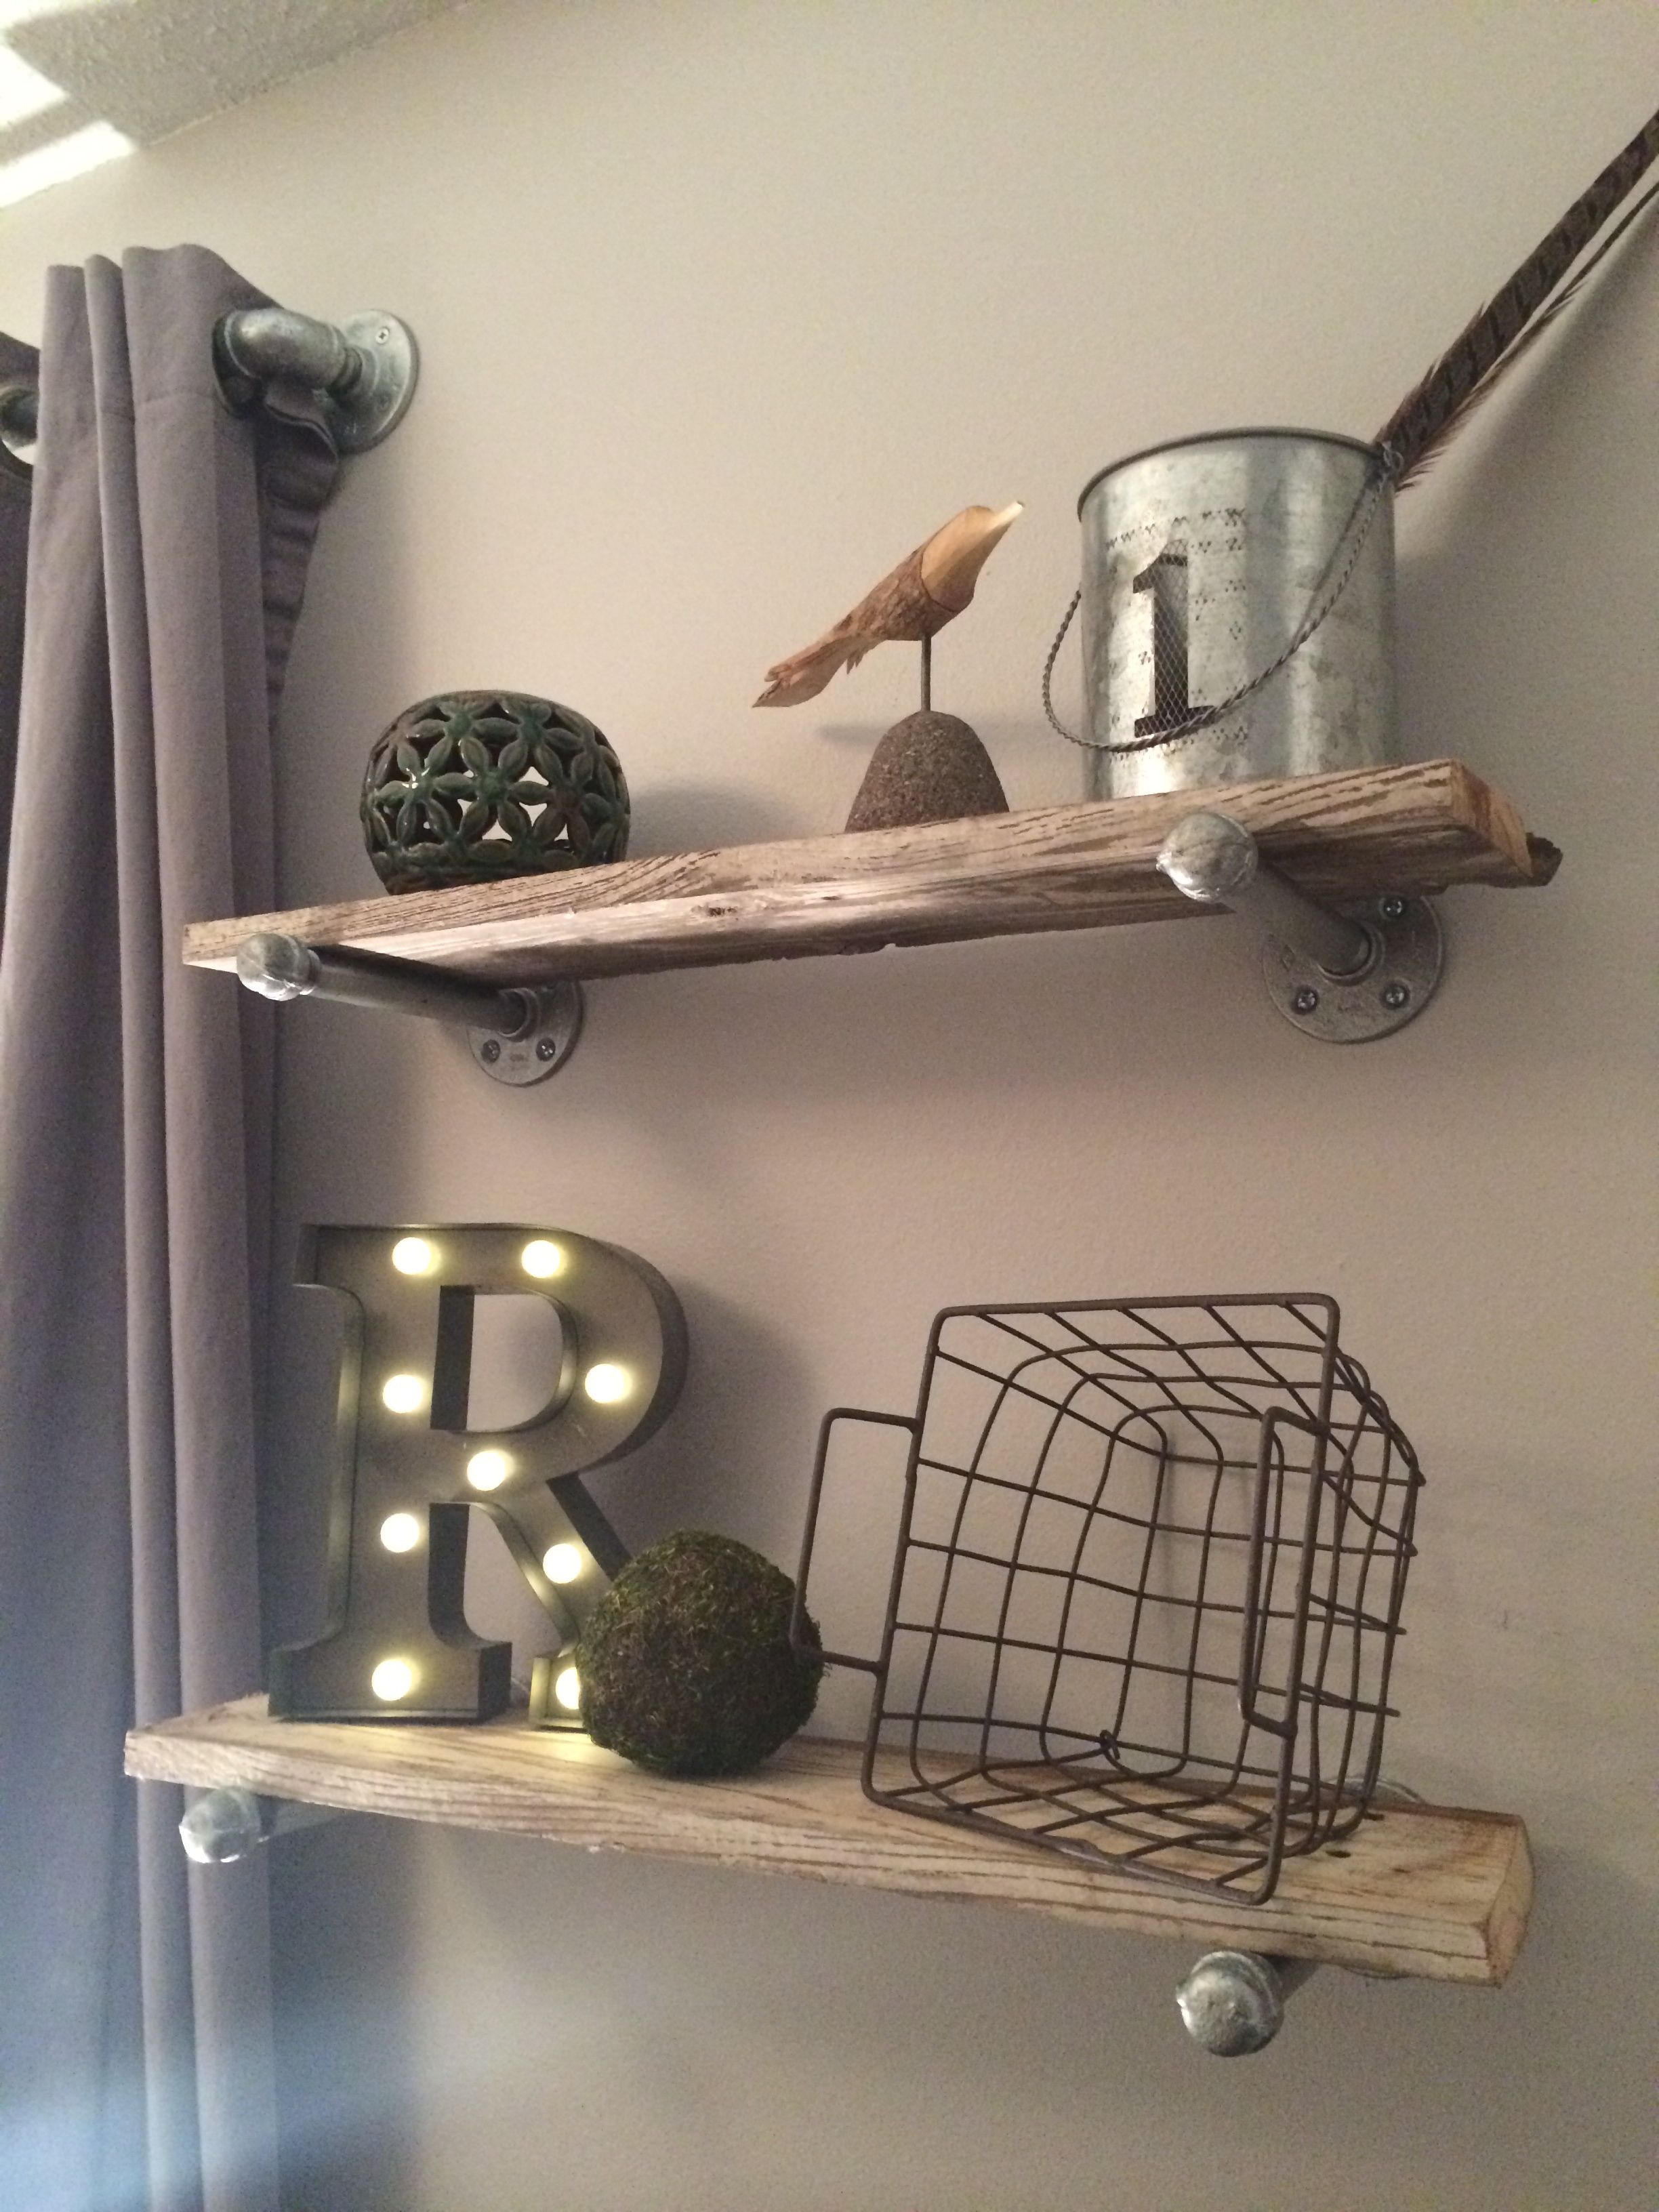 Woodland nursery industrial shelves barn wood and galvanized pipe marquee letter - Baby jungenzimmer ...